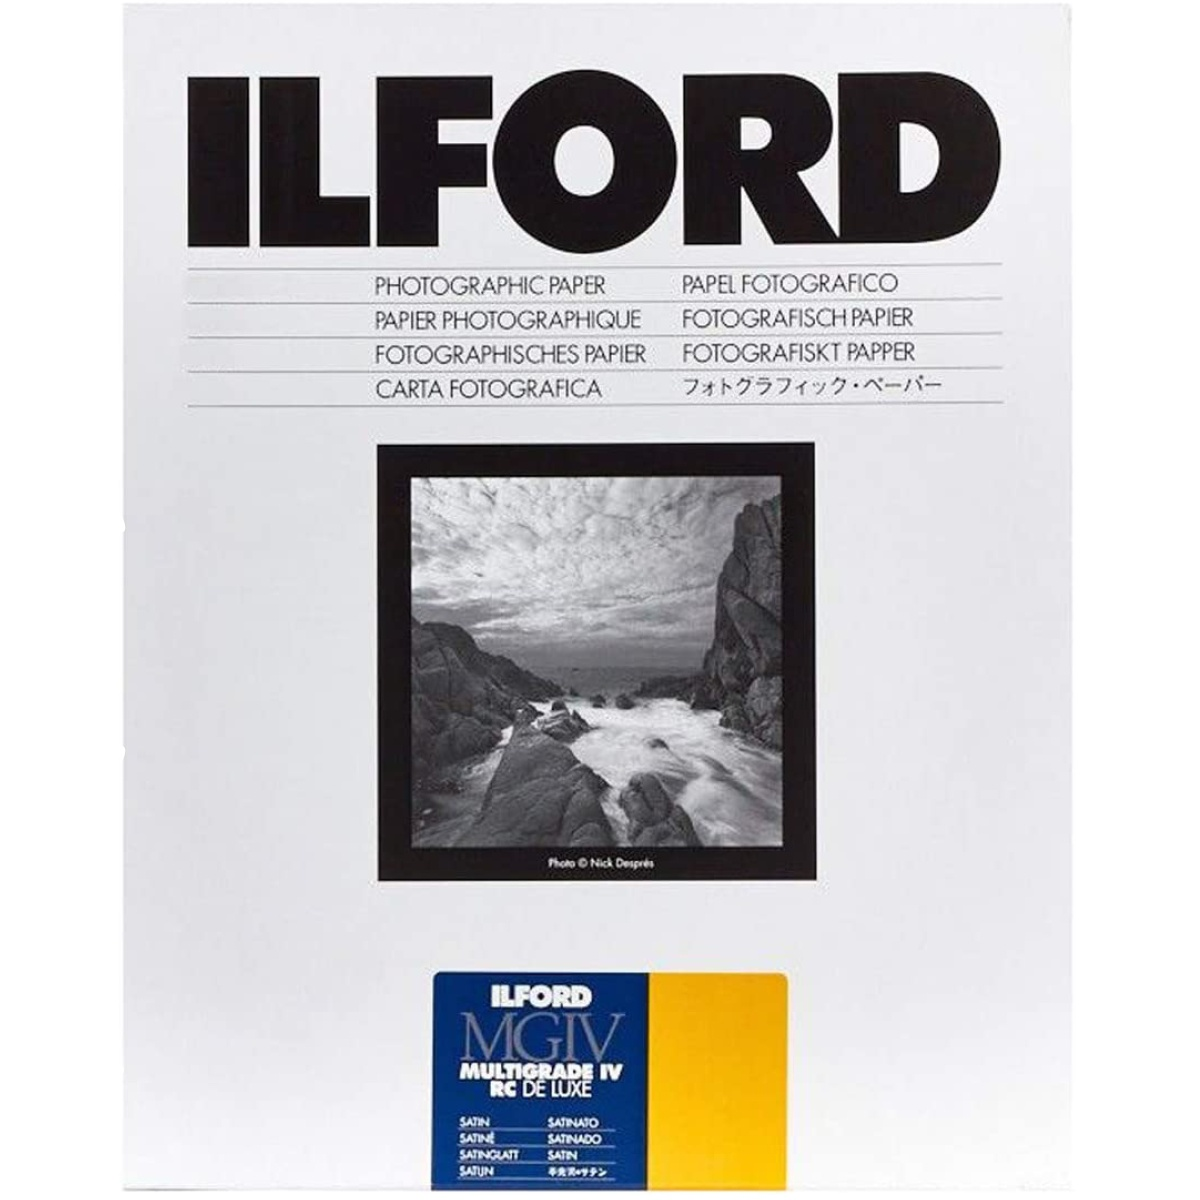 Ilford MG RV Deluxe 25m 30x40 50 Blatt